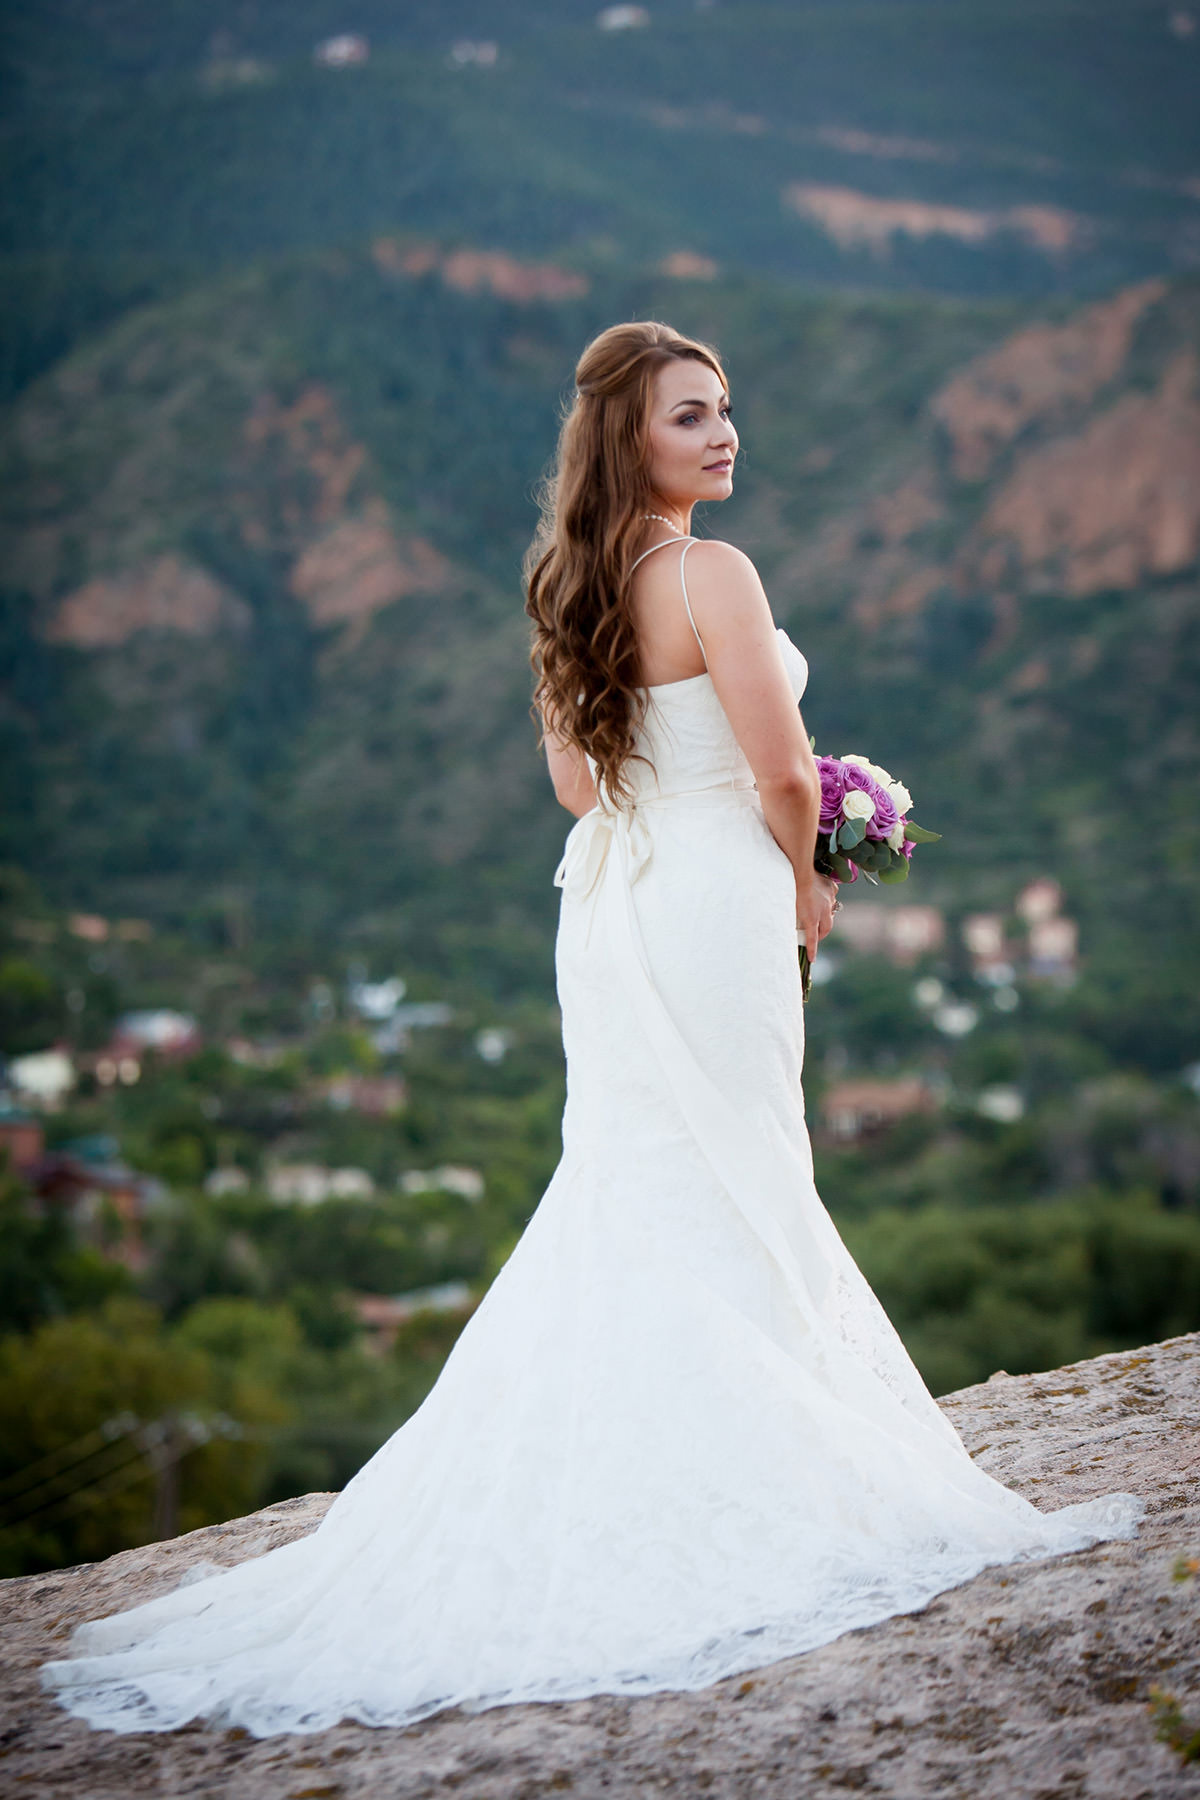 Your Wedding Pictures Delivered In Days, Not Weeks